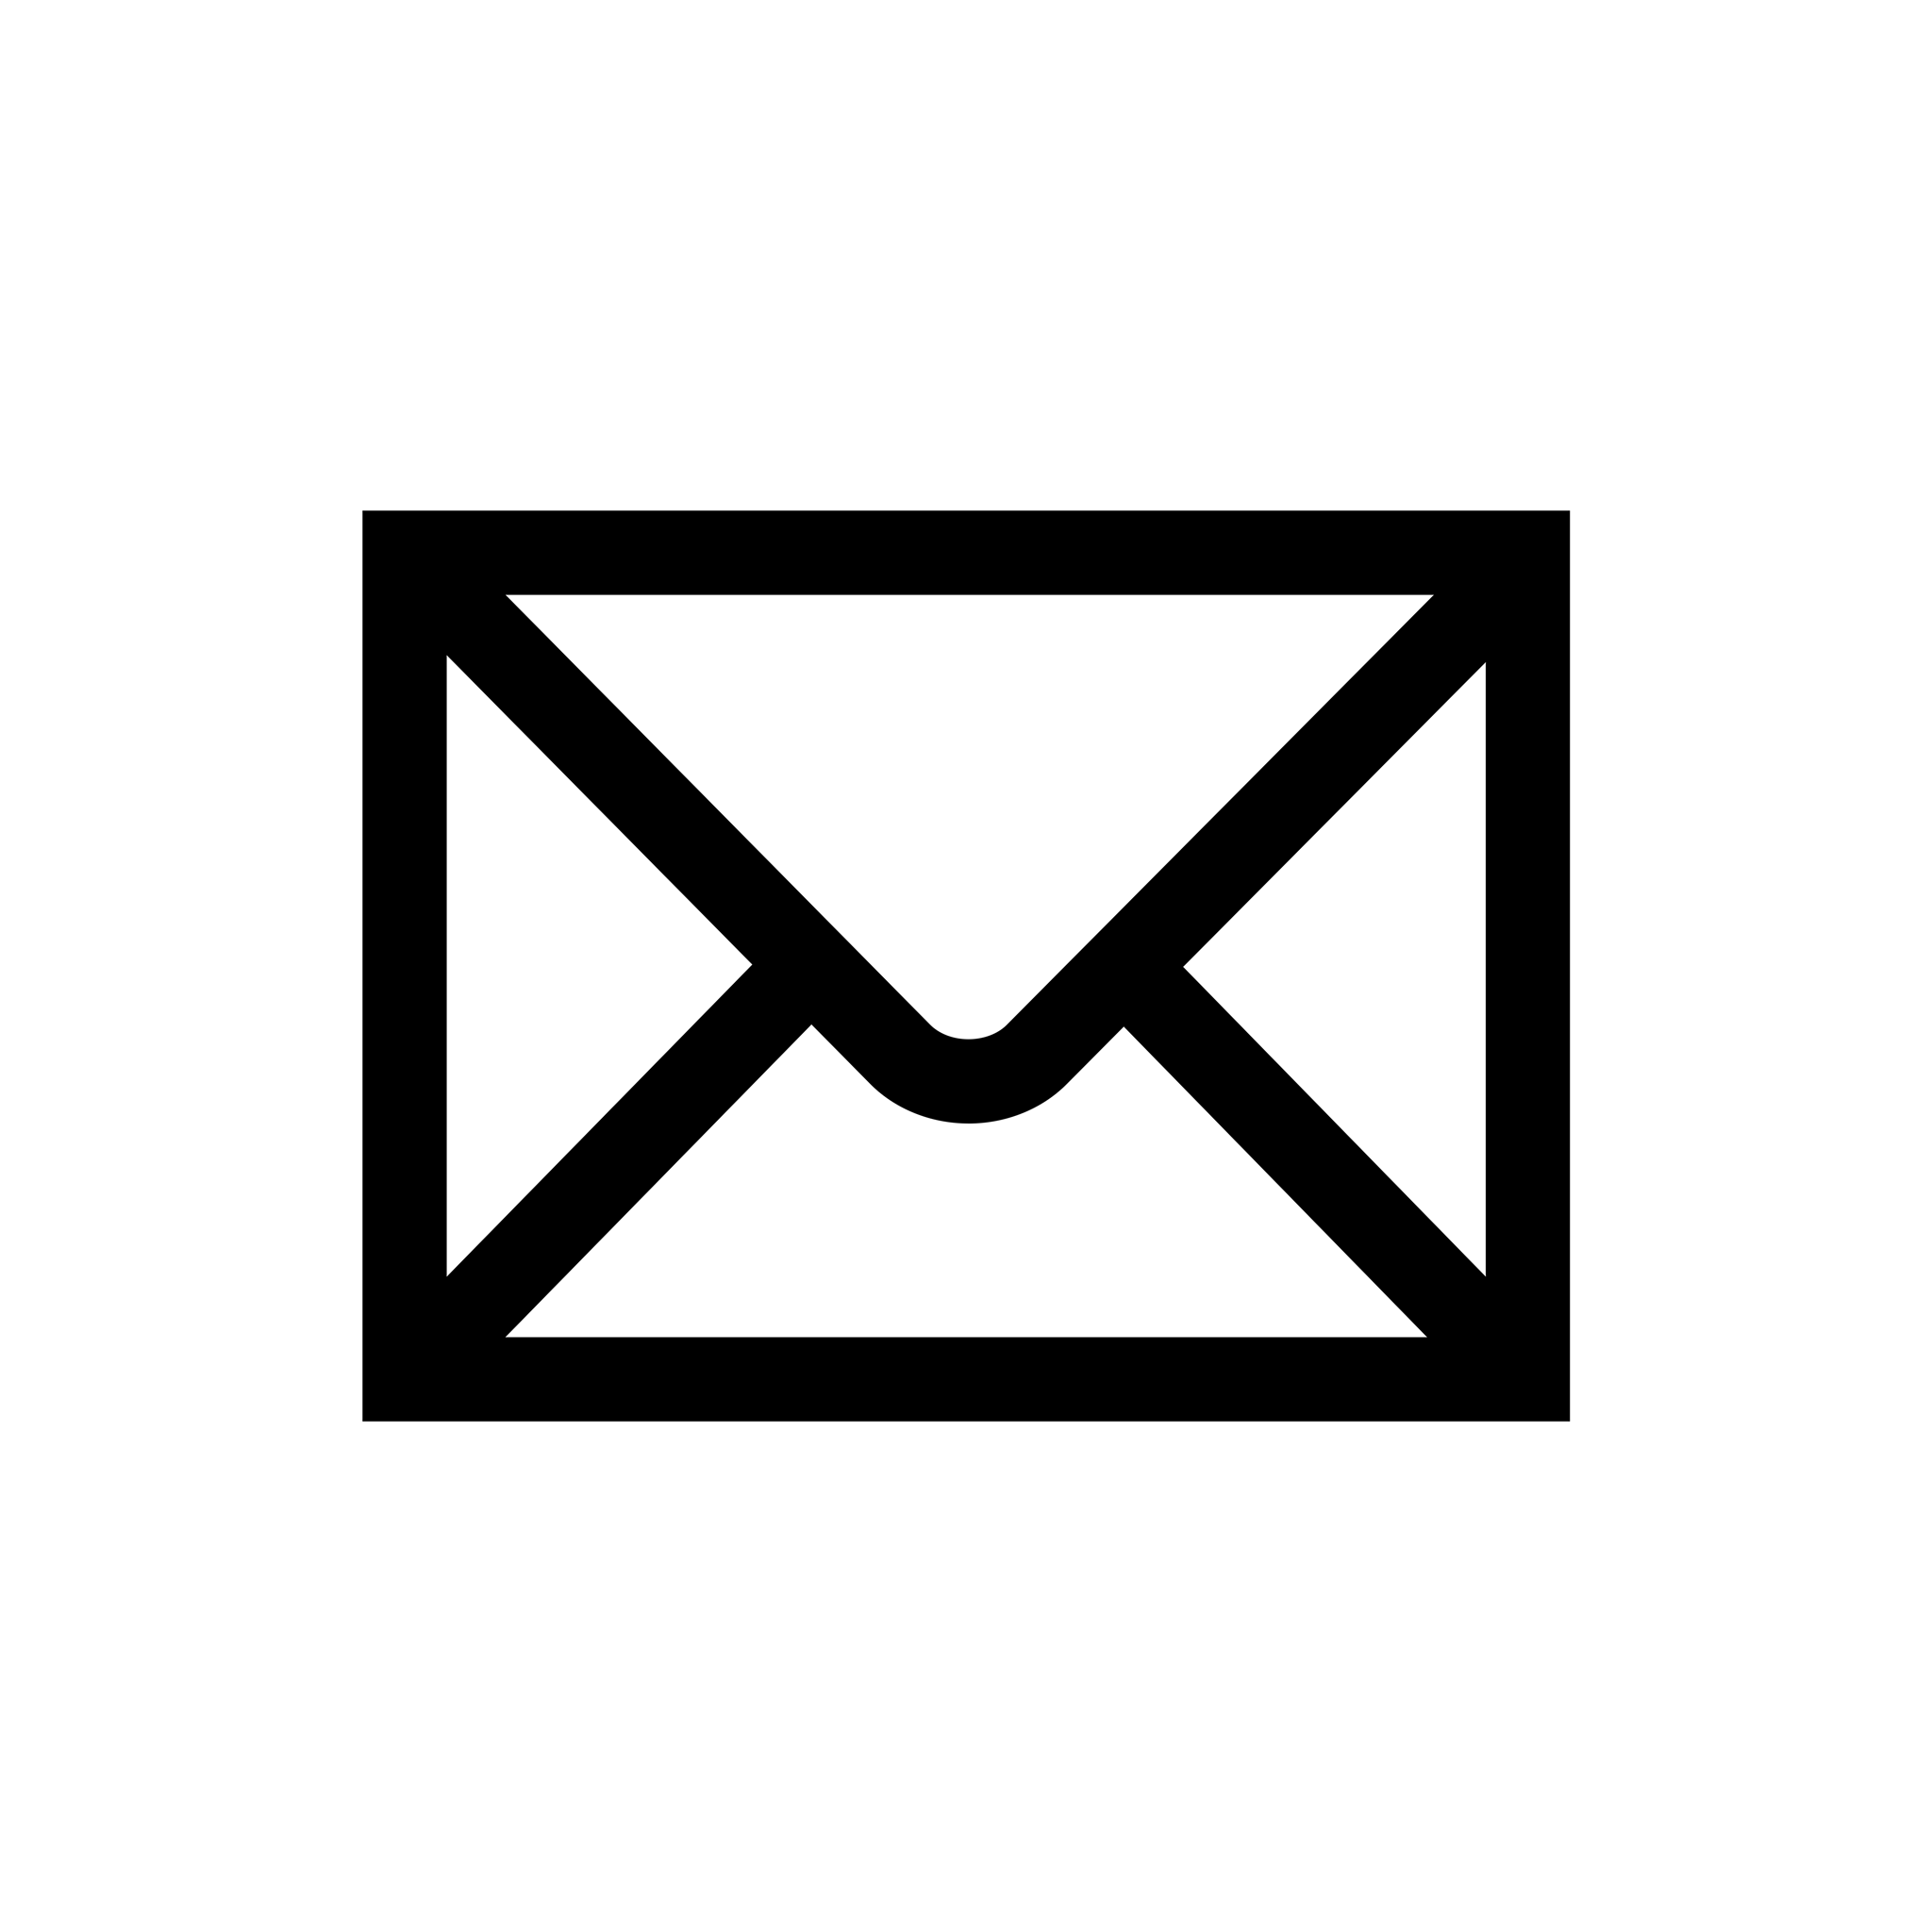 email-clipart-transparent-7.png